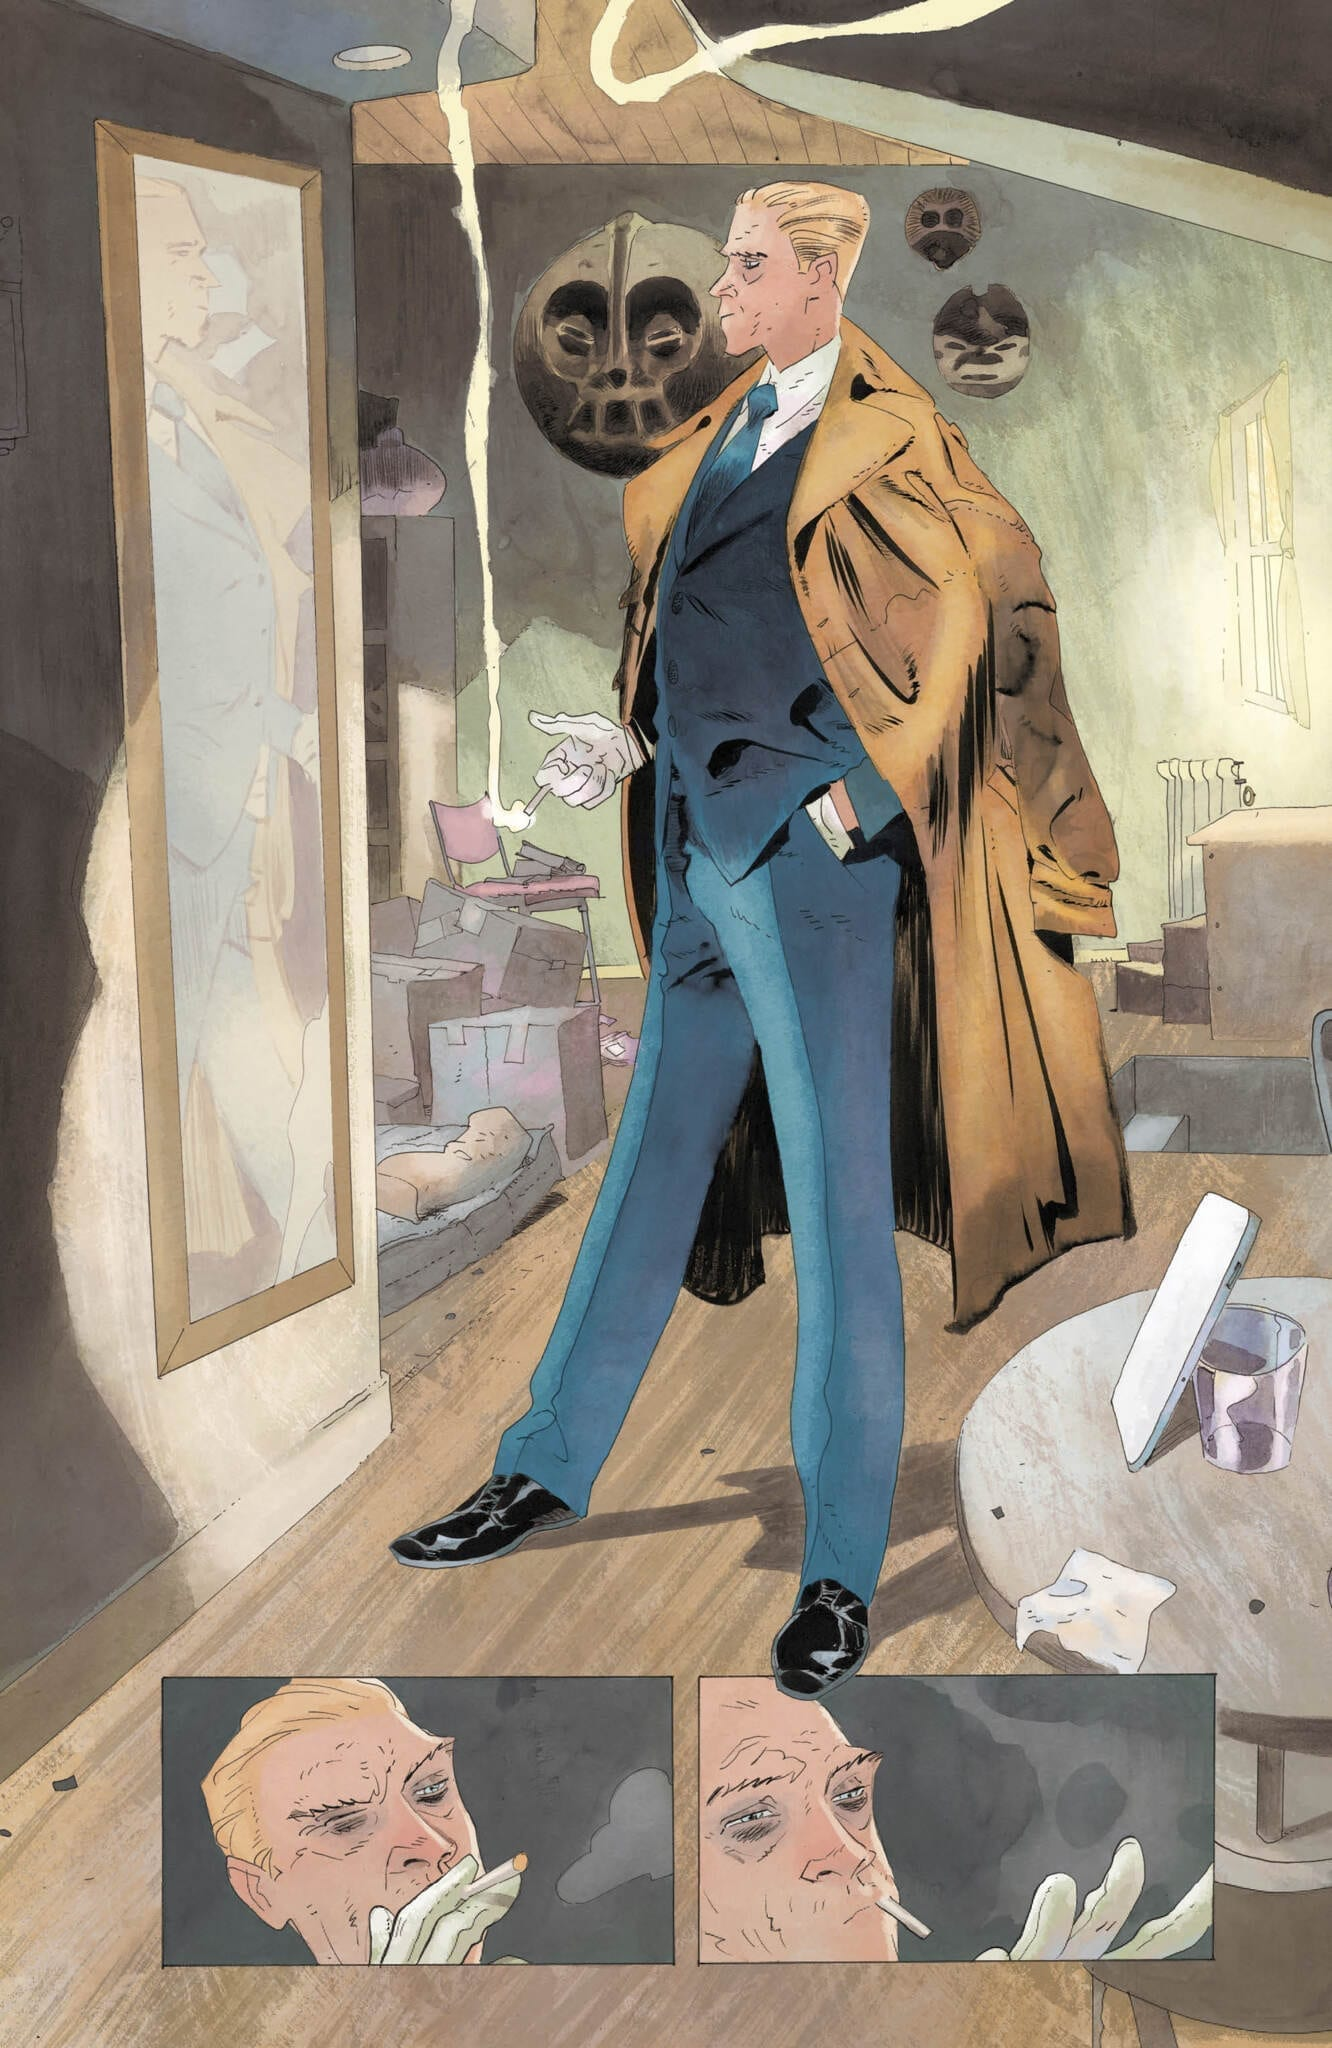 Cosntantine looking dapper in Hellblazer #4.